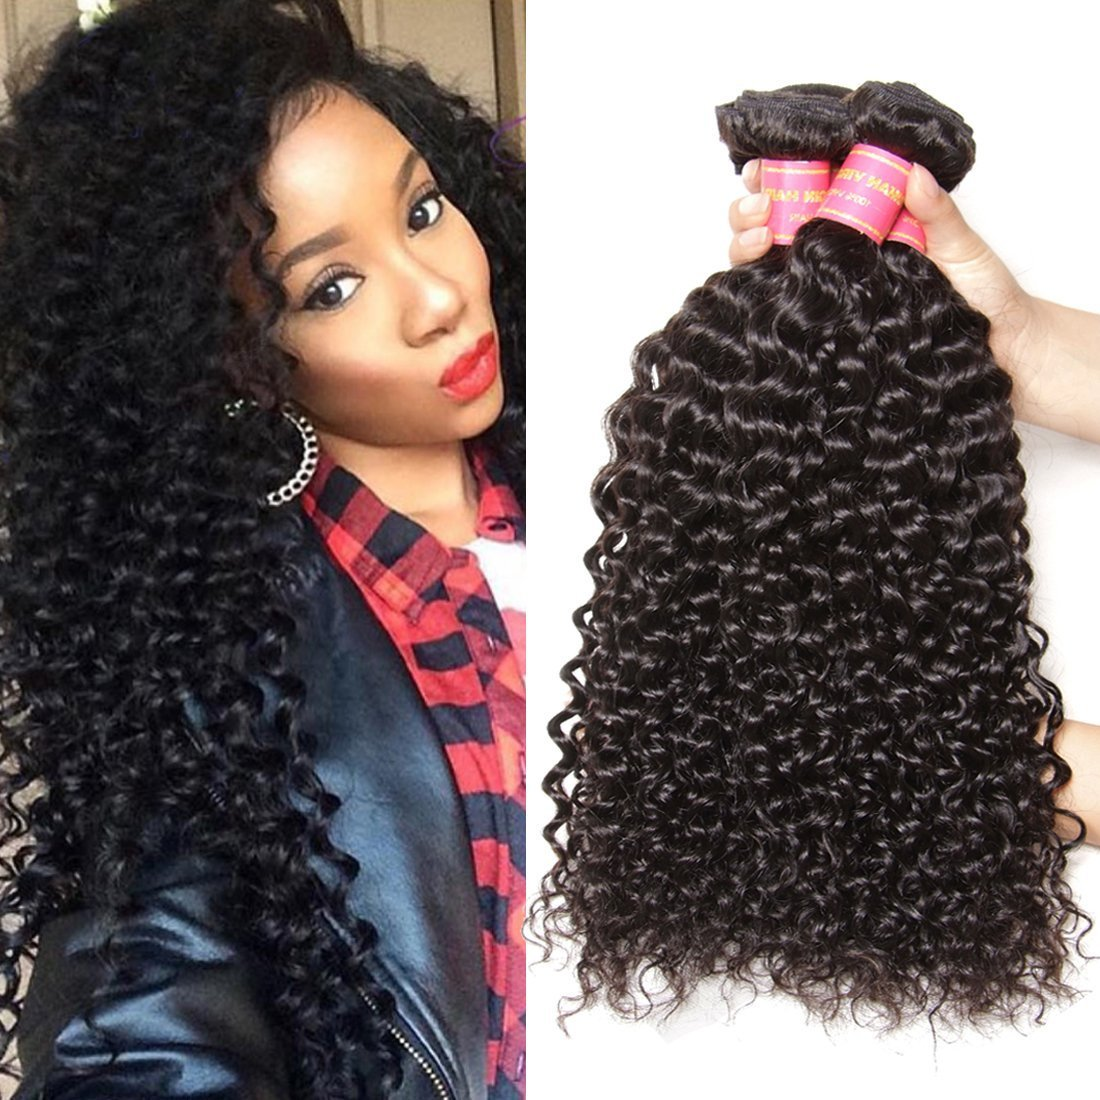 Amazon jolia hair virgin brazilian curly hair weave 3 amazon jolia hair virgin brazilian curly hair weave 3 bundles 7a unprocessed brazilian virgin human hair weave extensions natural black hair color pmusecretfo Image collections